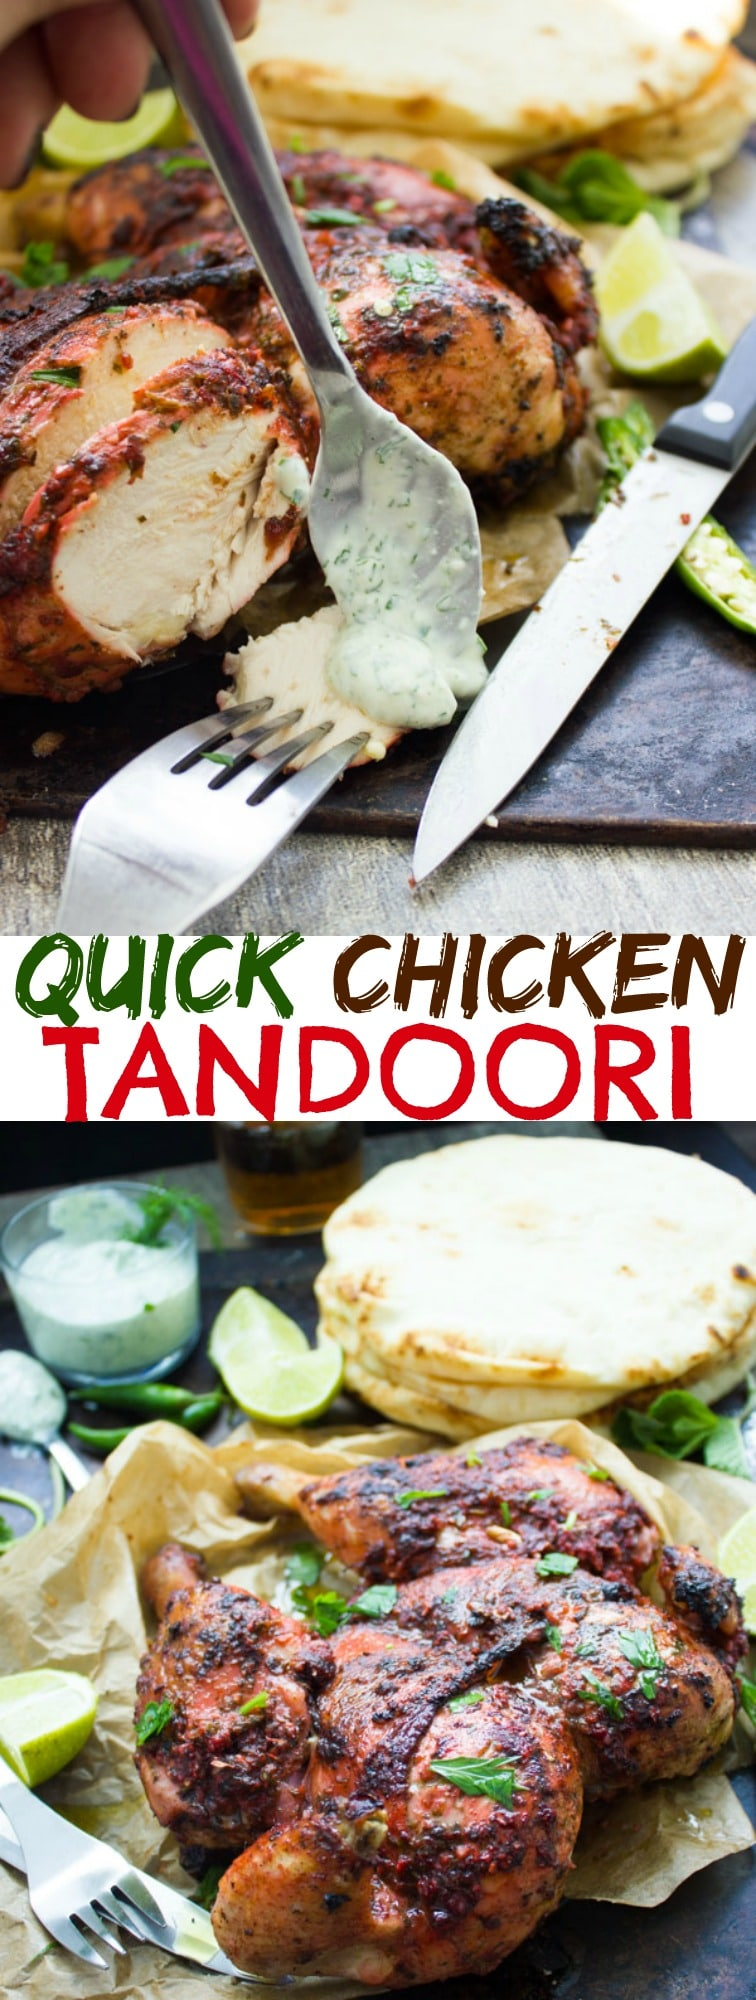 Quick Roast Tandoori Chicken | This Indian-inspired whole roasted tandoori chicken seasoned liberally with a homemade tandoori masala spice mix turns out juicy and tender with the crispiest skin imaginable! The best thing? You don't even have to marinate the chicken before baking! #chicken, #dinner, #easy, #roasted, #Indian,